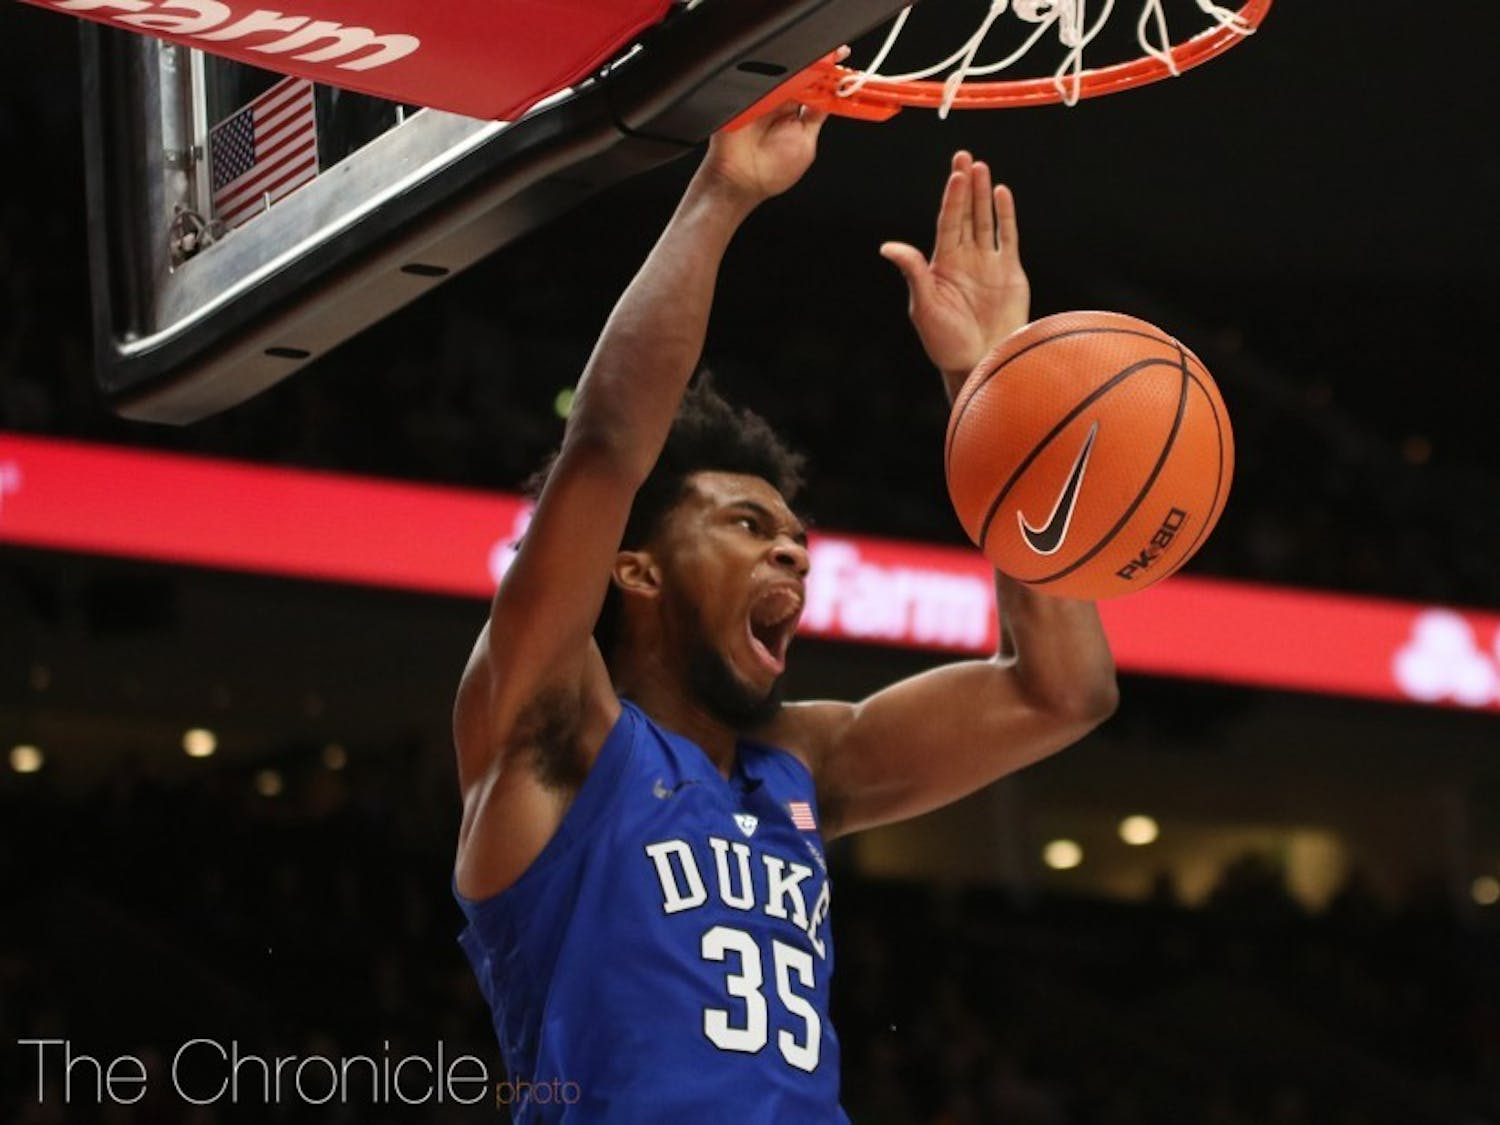 Marvin Bagley III matched Duke's freshman scoring record with 34 points Friday.